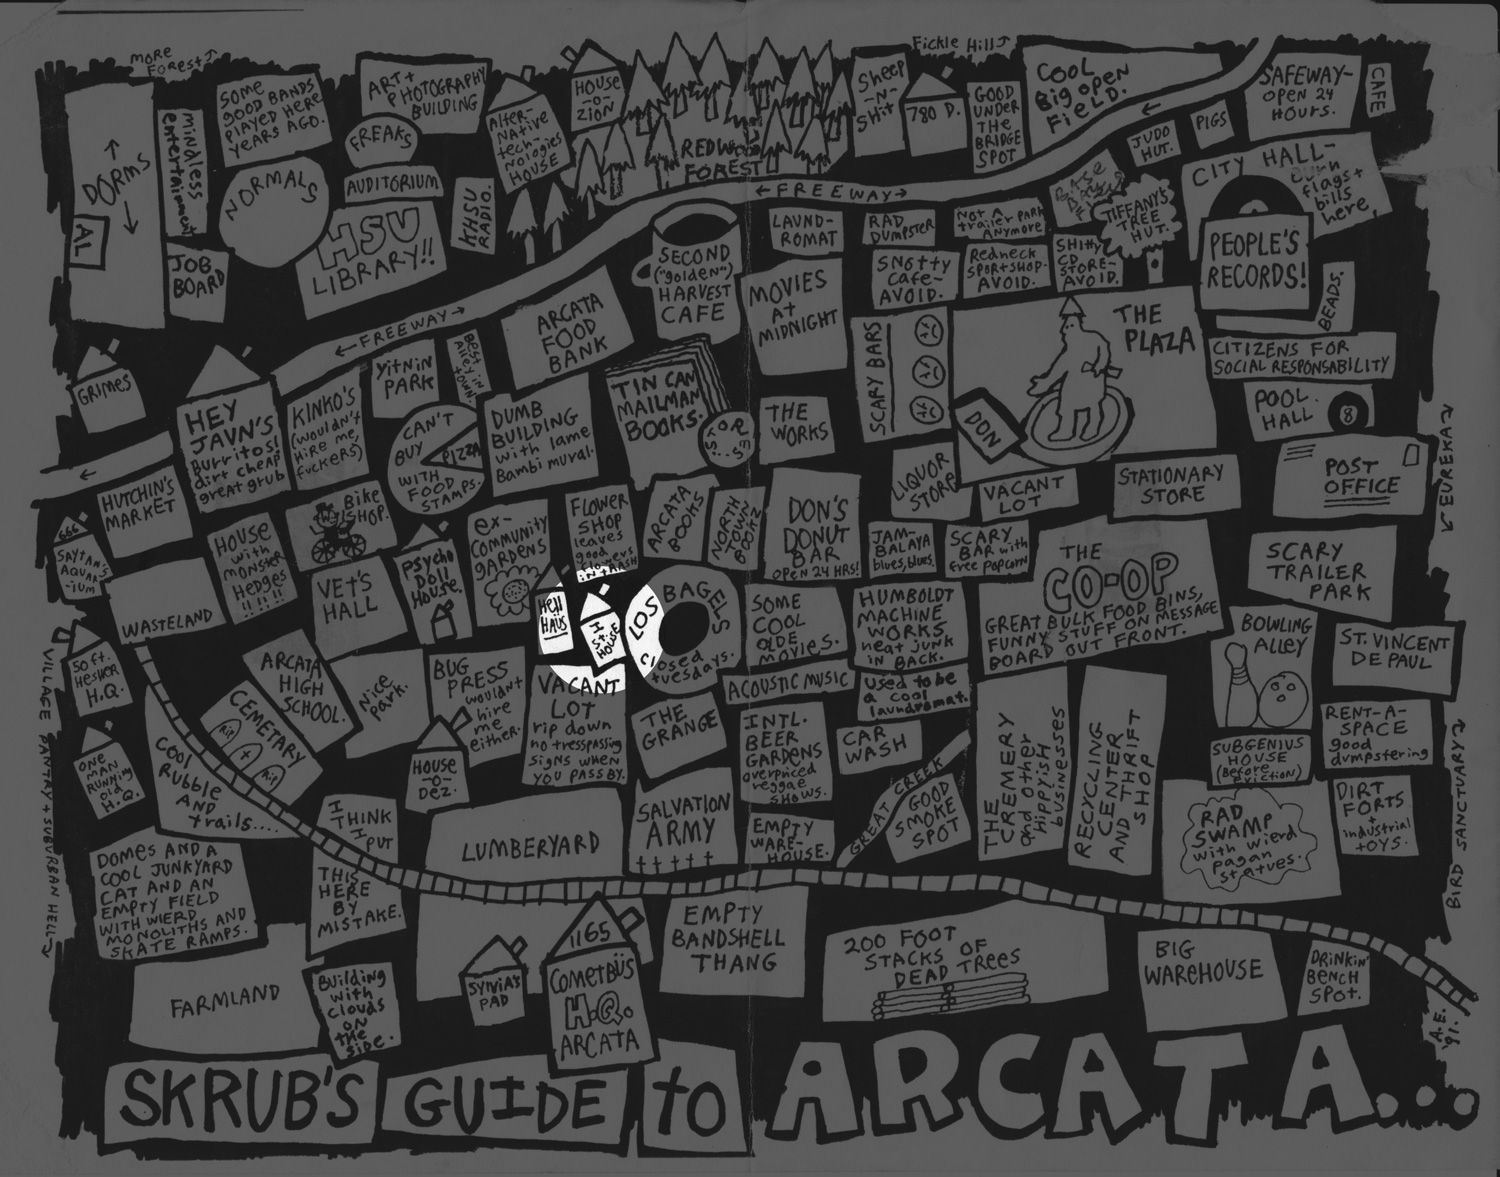 Aaron Elliott's map of arcata